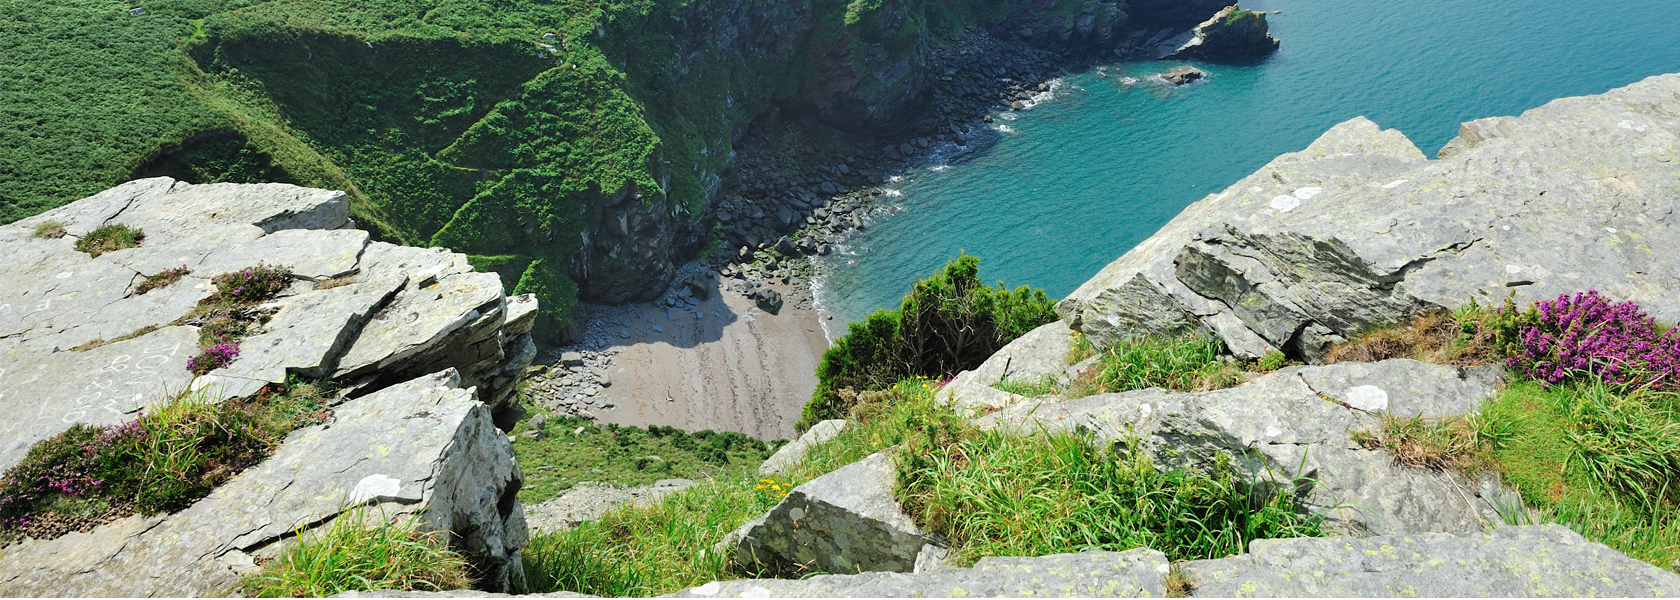 Valley_of_the_Rocks_Lynton_Rocks_1680px